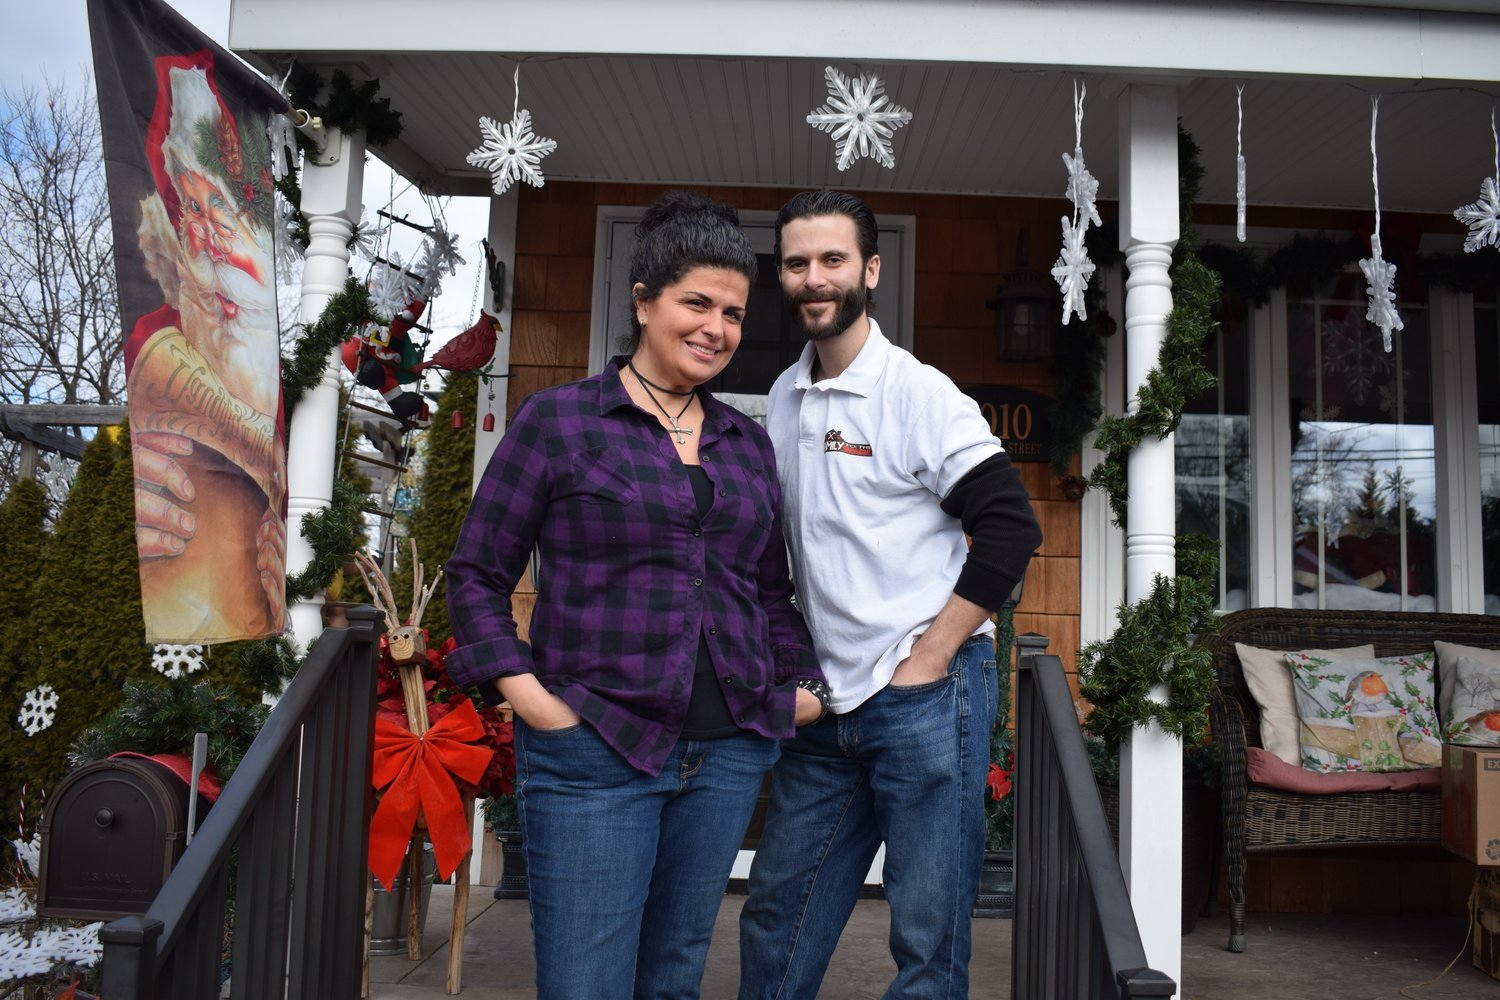 Gina and Vincent Centauro run the Rescuing Families Inc. home-remodeling nonprofit out of their own home in Franklin Square.